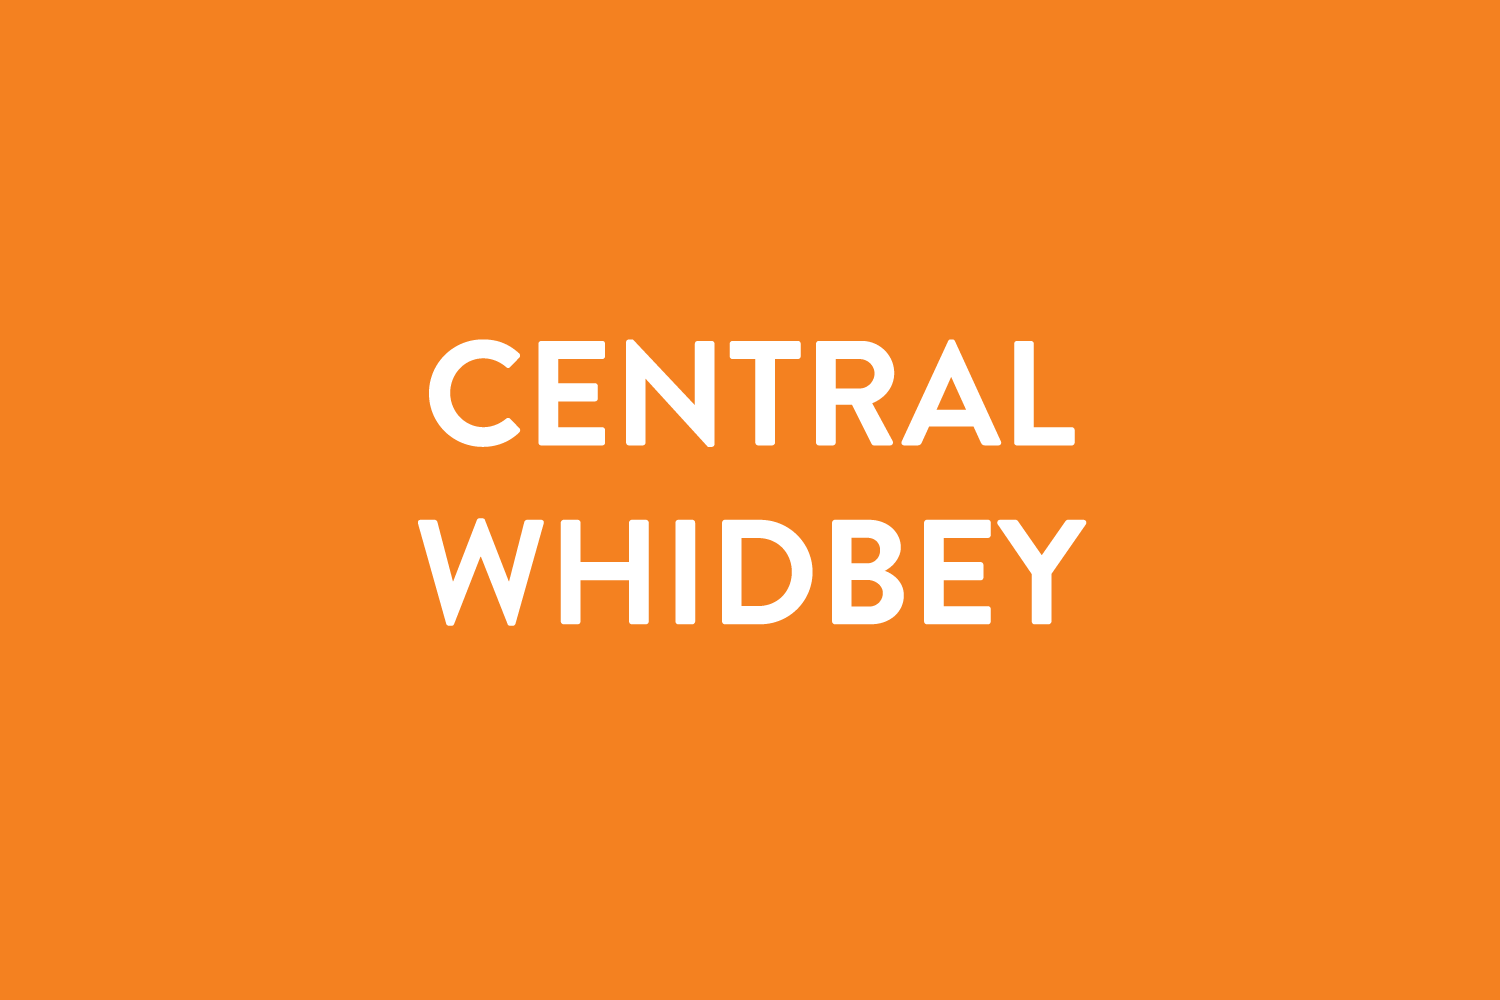 central_whidbey.png